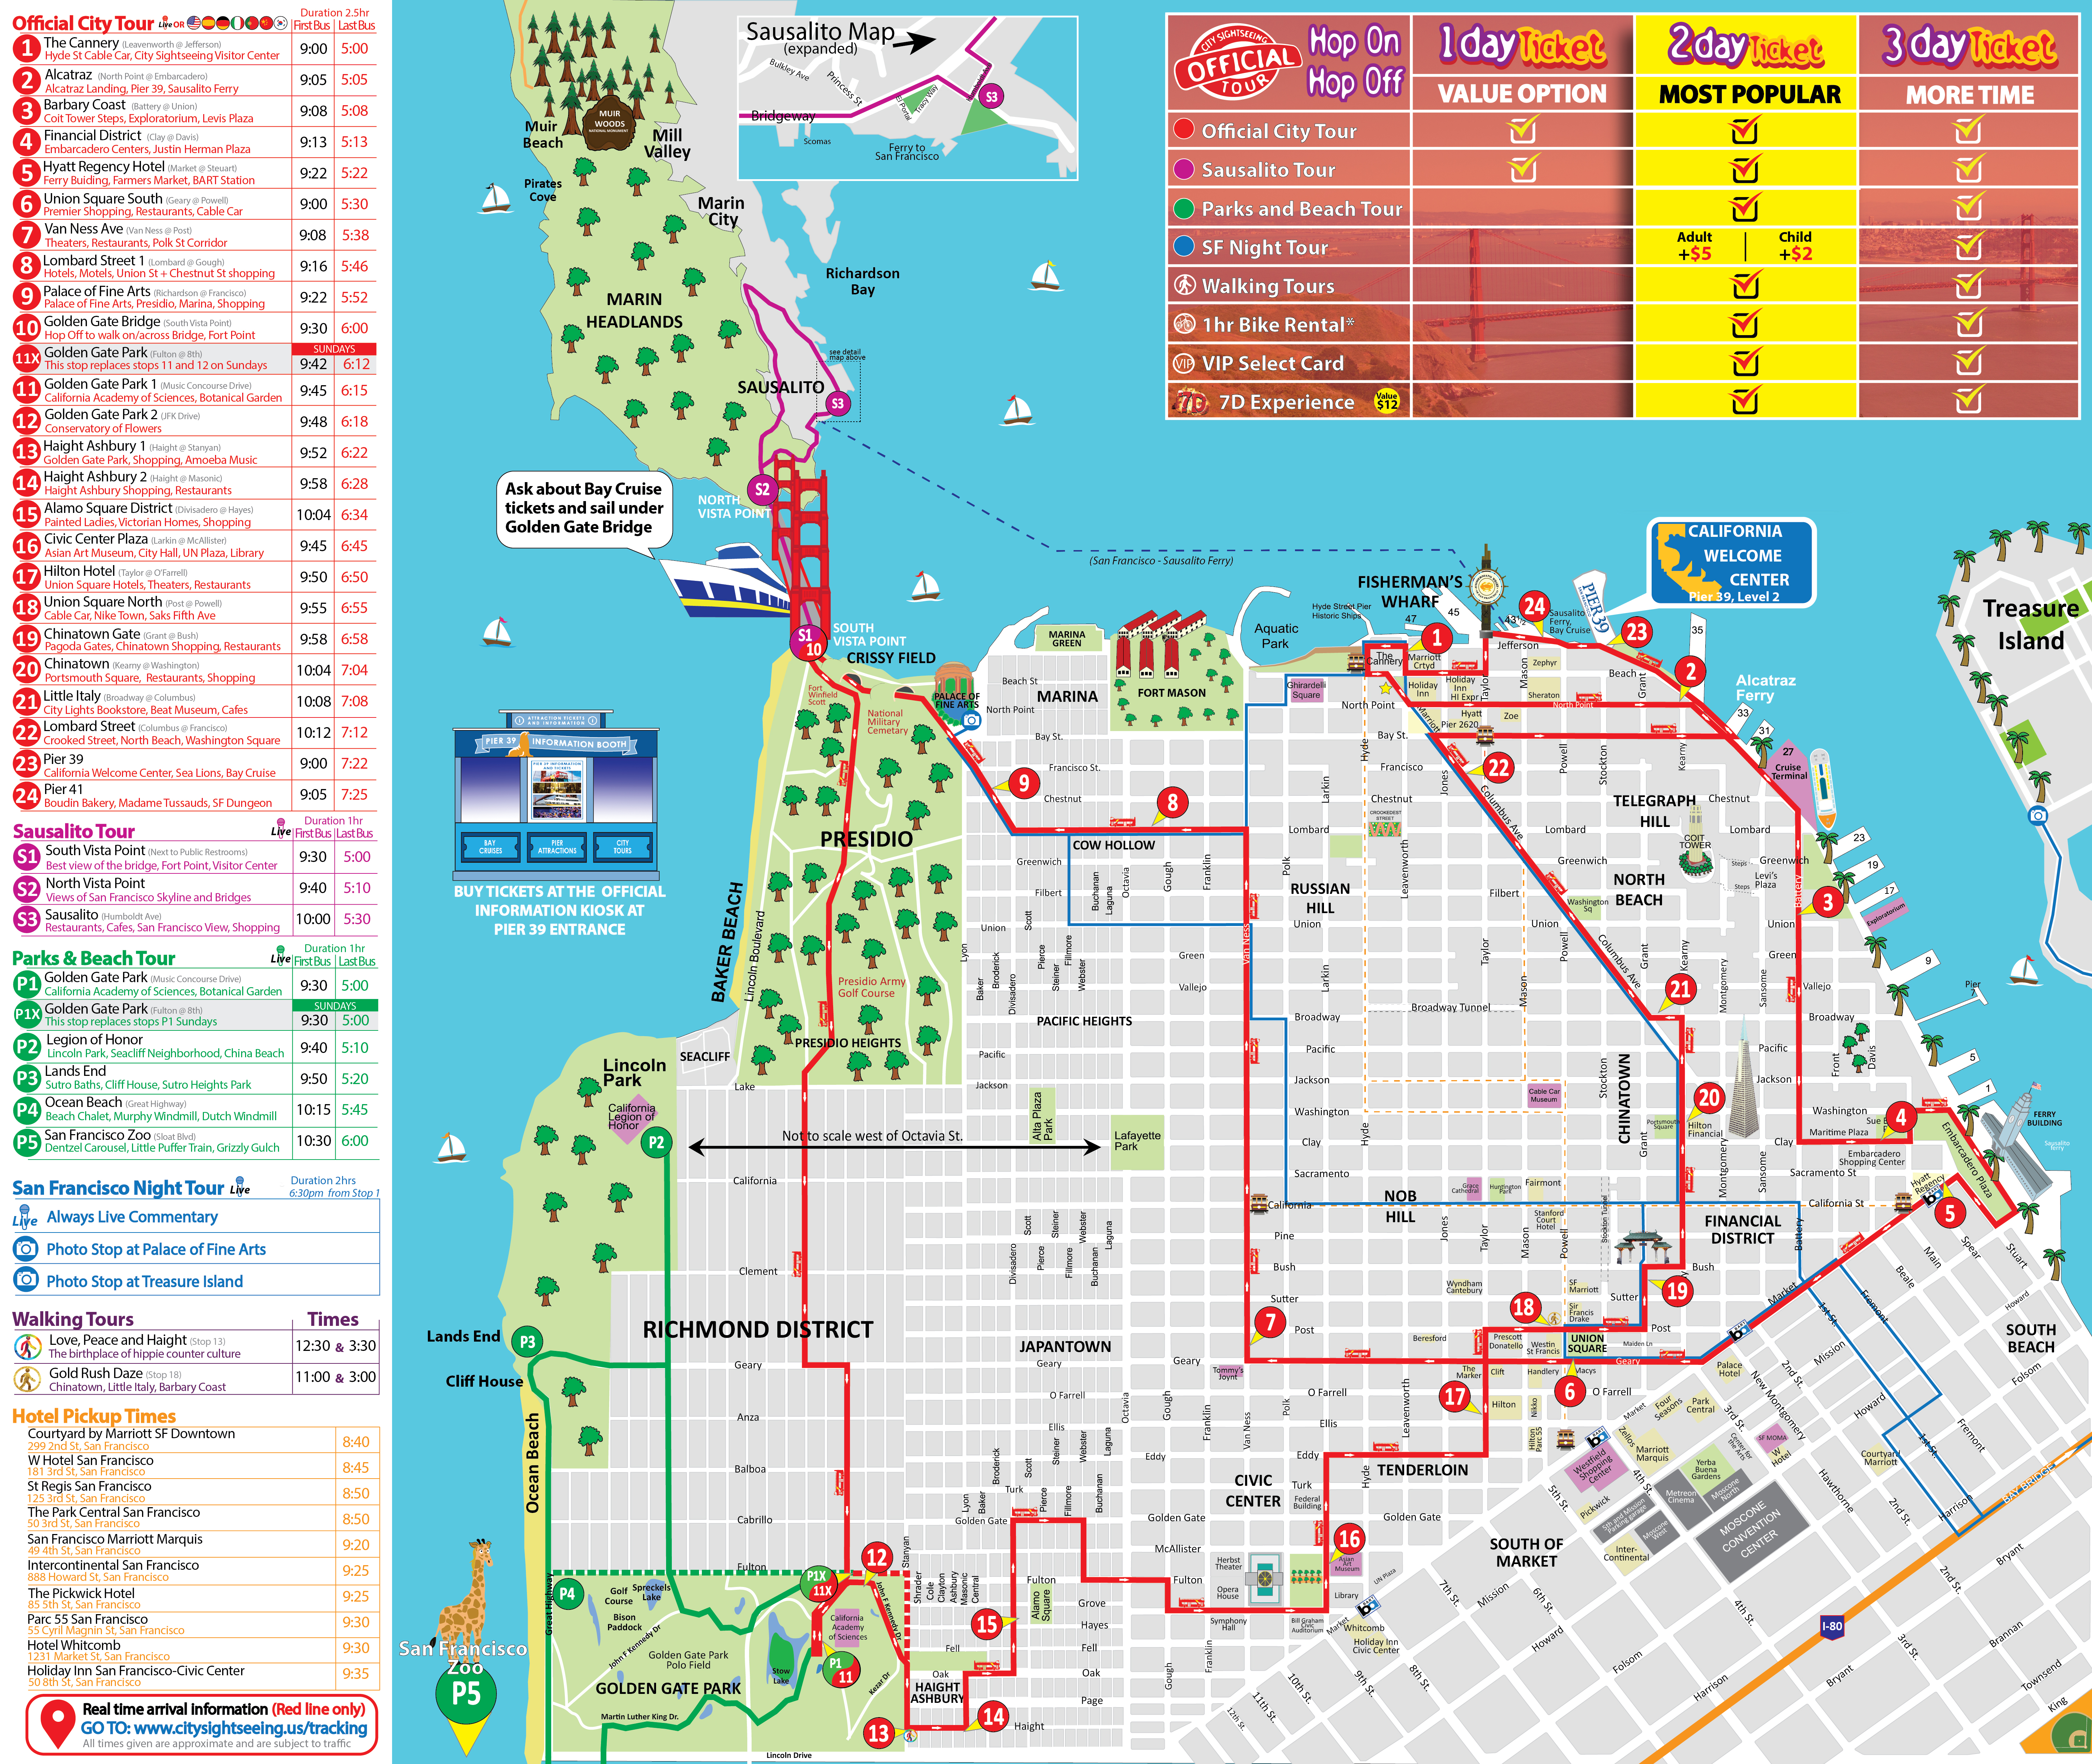 San Francisco Tour Map City Sightseing